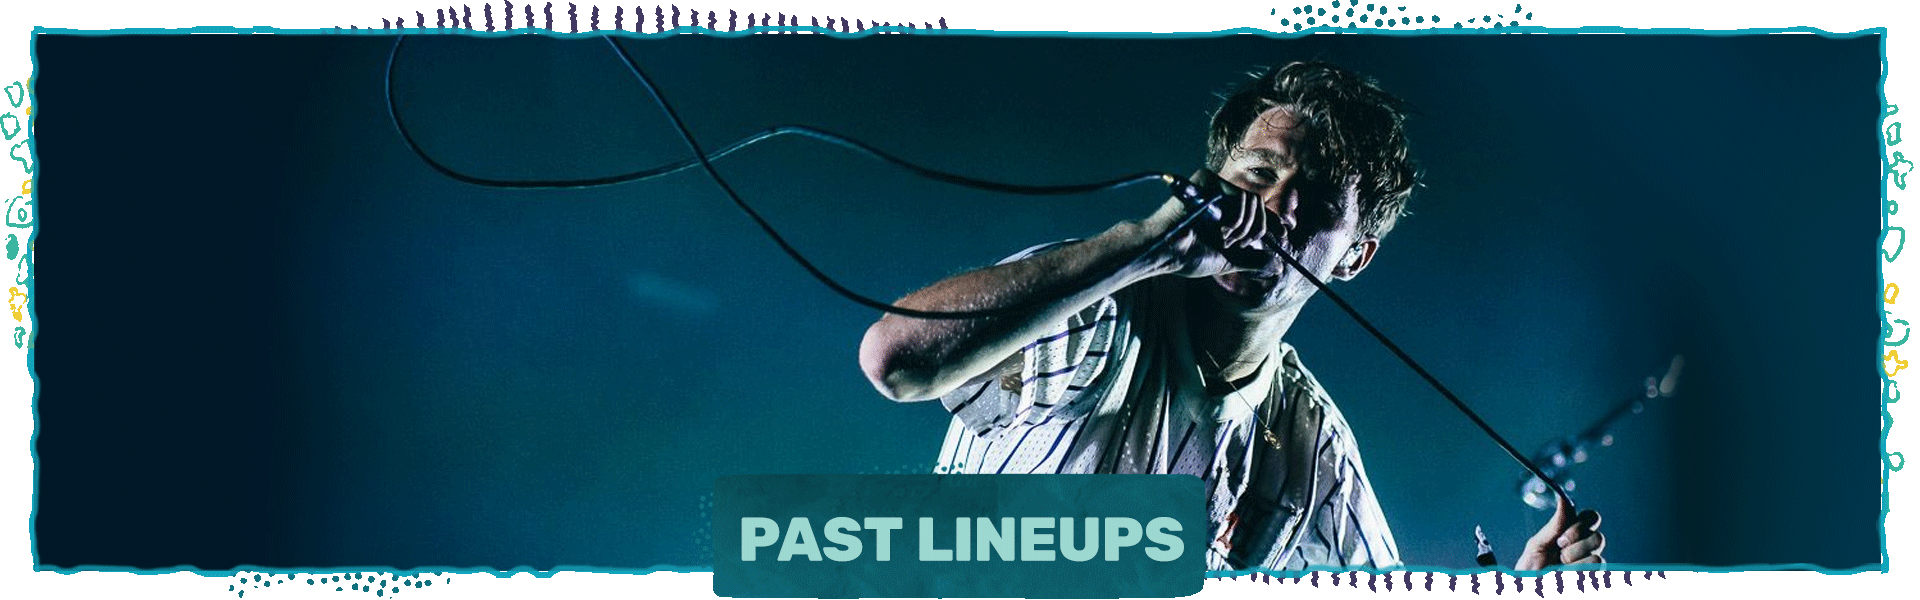 Firefly Past Lineups photo